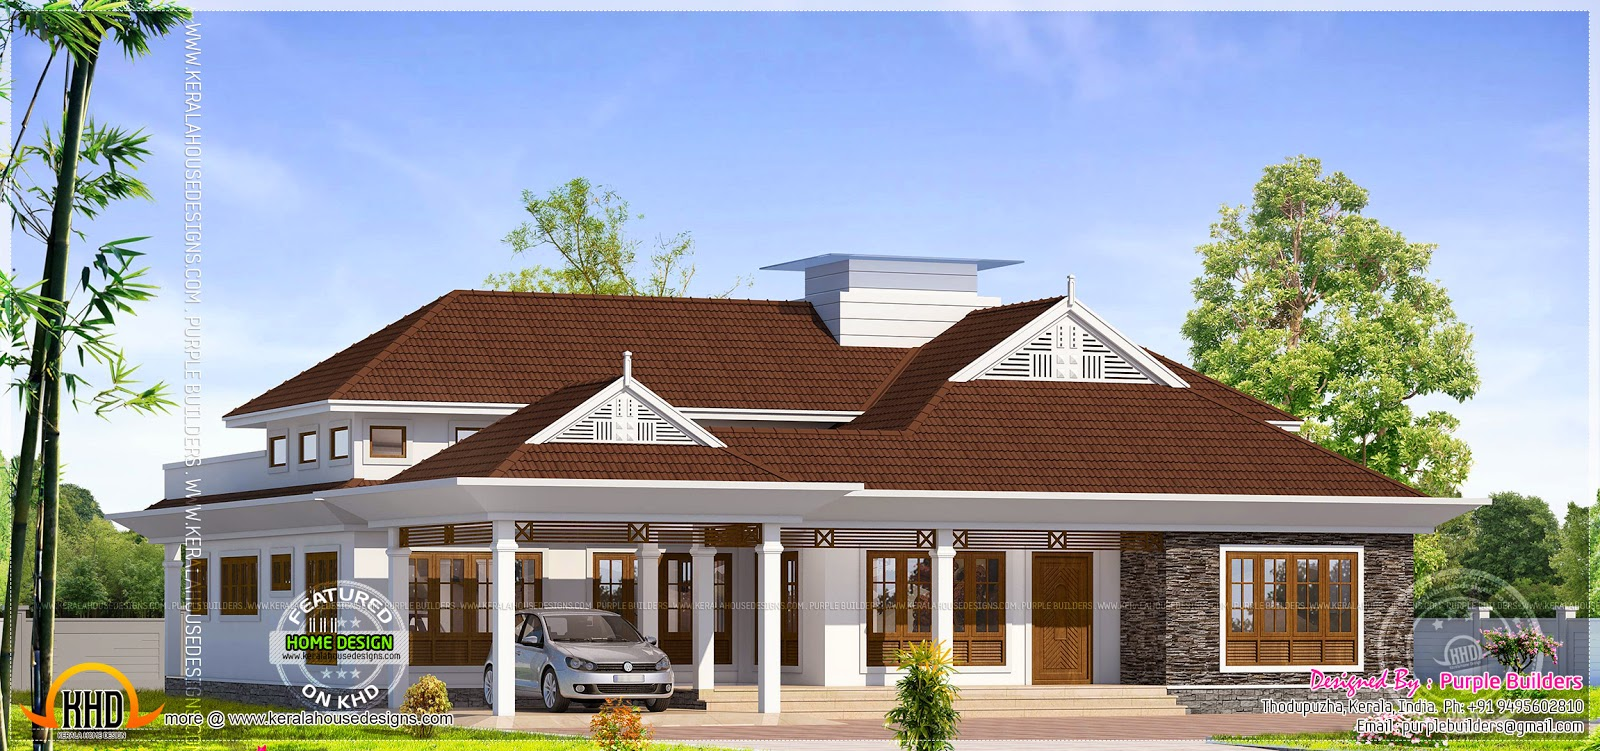 Grand single storied bungalow exterior kerala home for Single storied kerala house plans